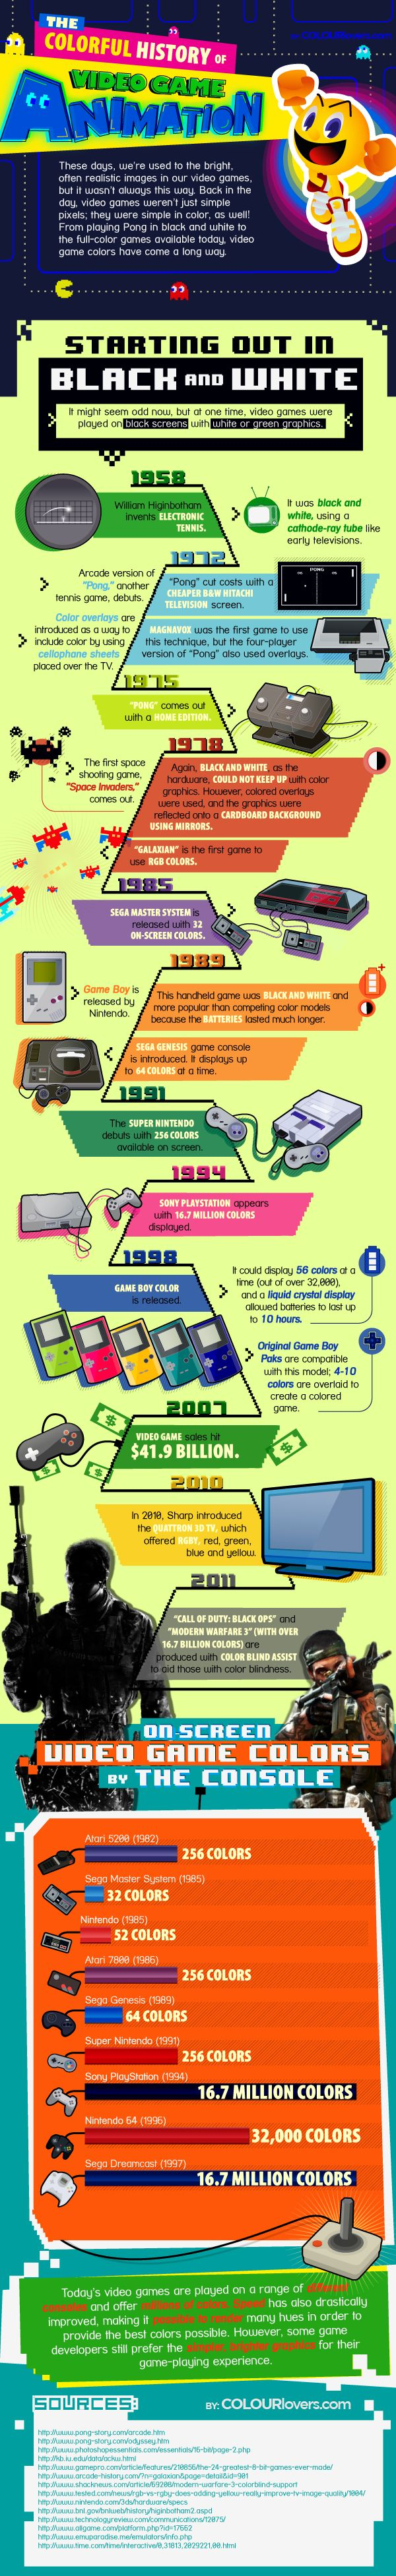 From black and white one-pixel-game called 'Pong' to 16M colours 'Call of Duty' in FullHD. Look how animation in games changed in last 40 years. Check 'Colorful History of Video Game Animation' to learn more.  #infographic #timeline